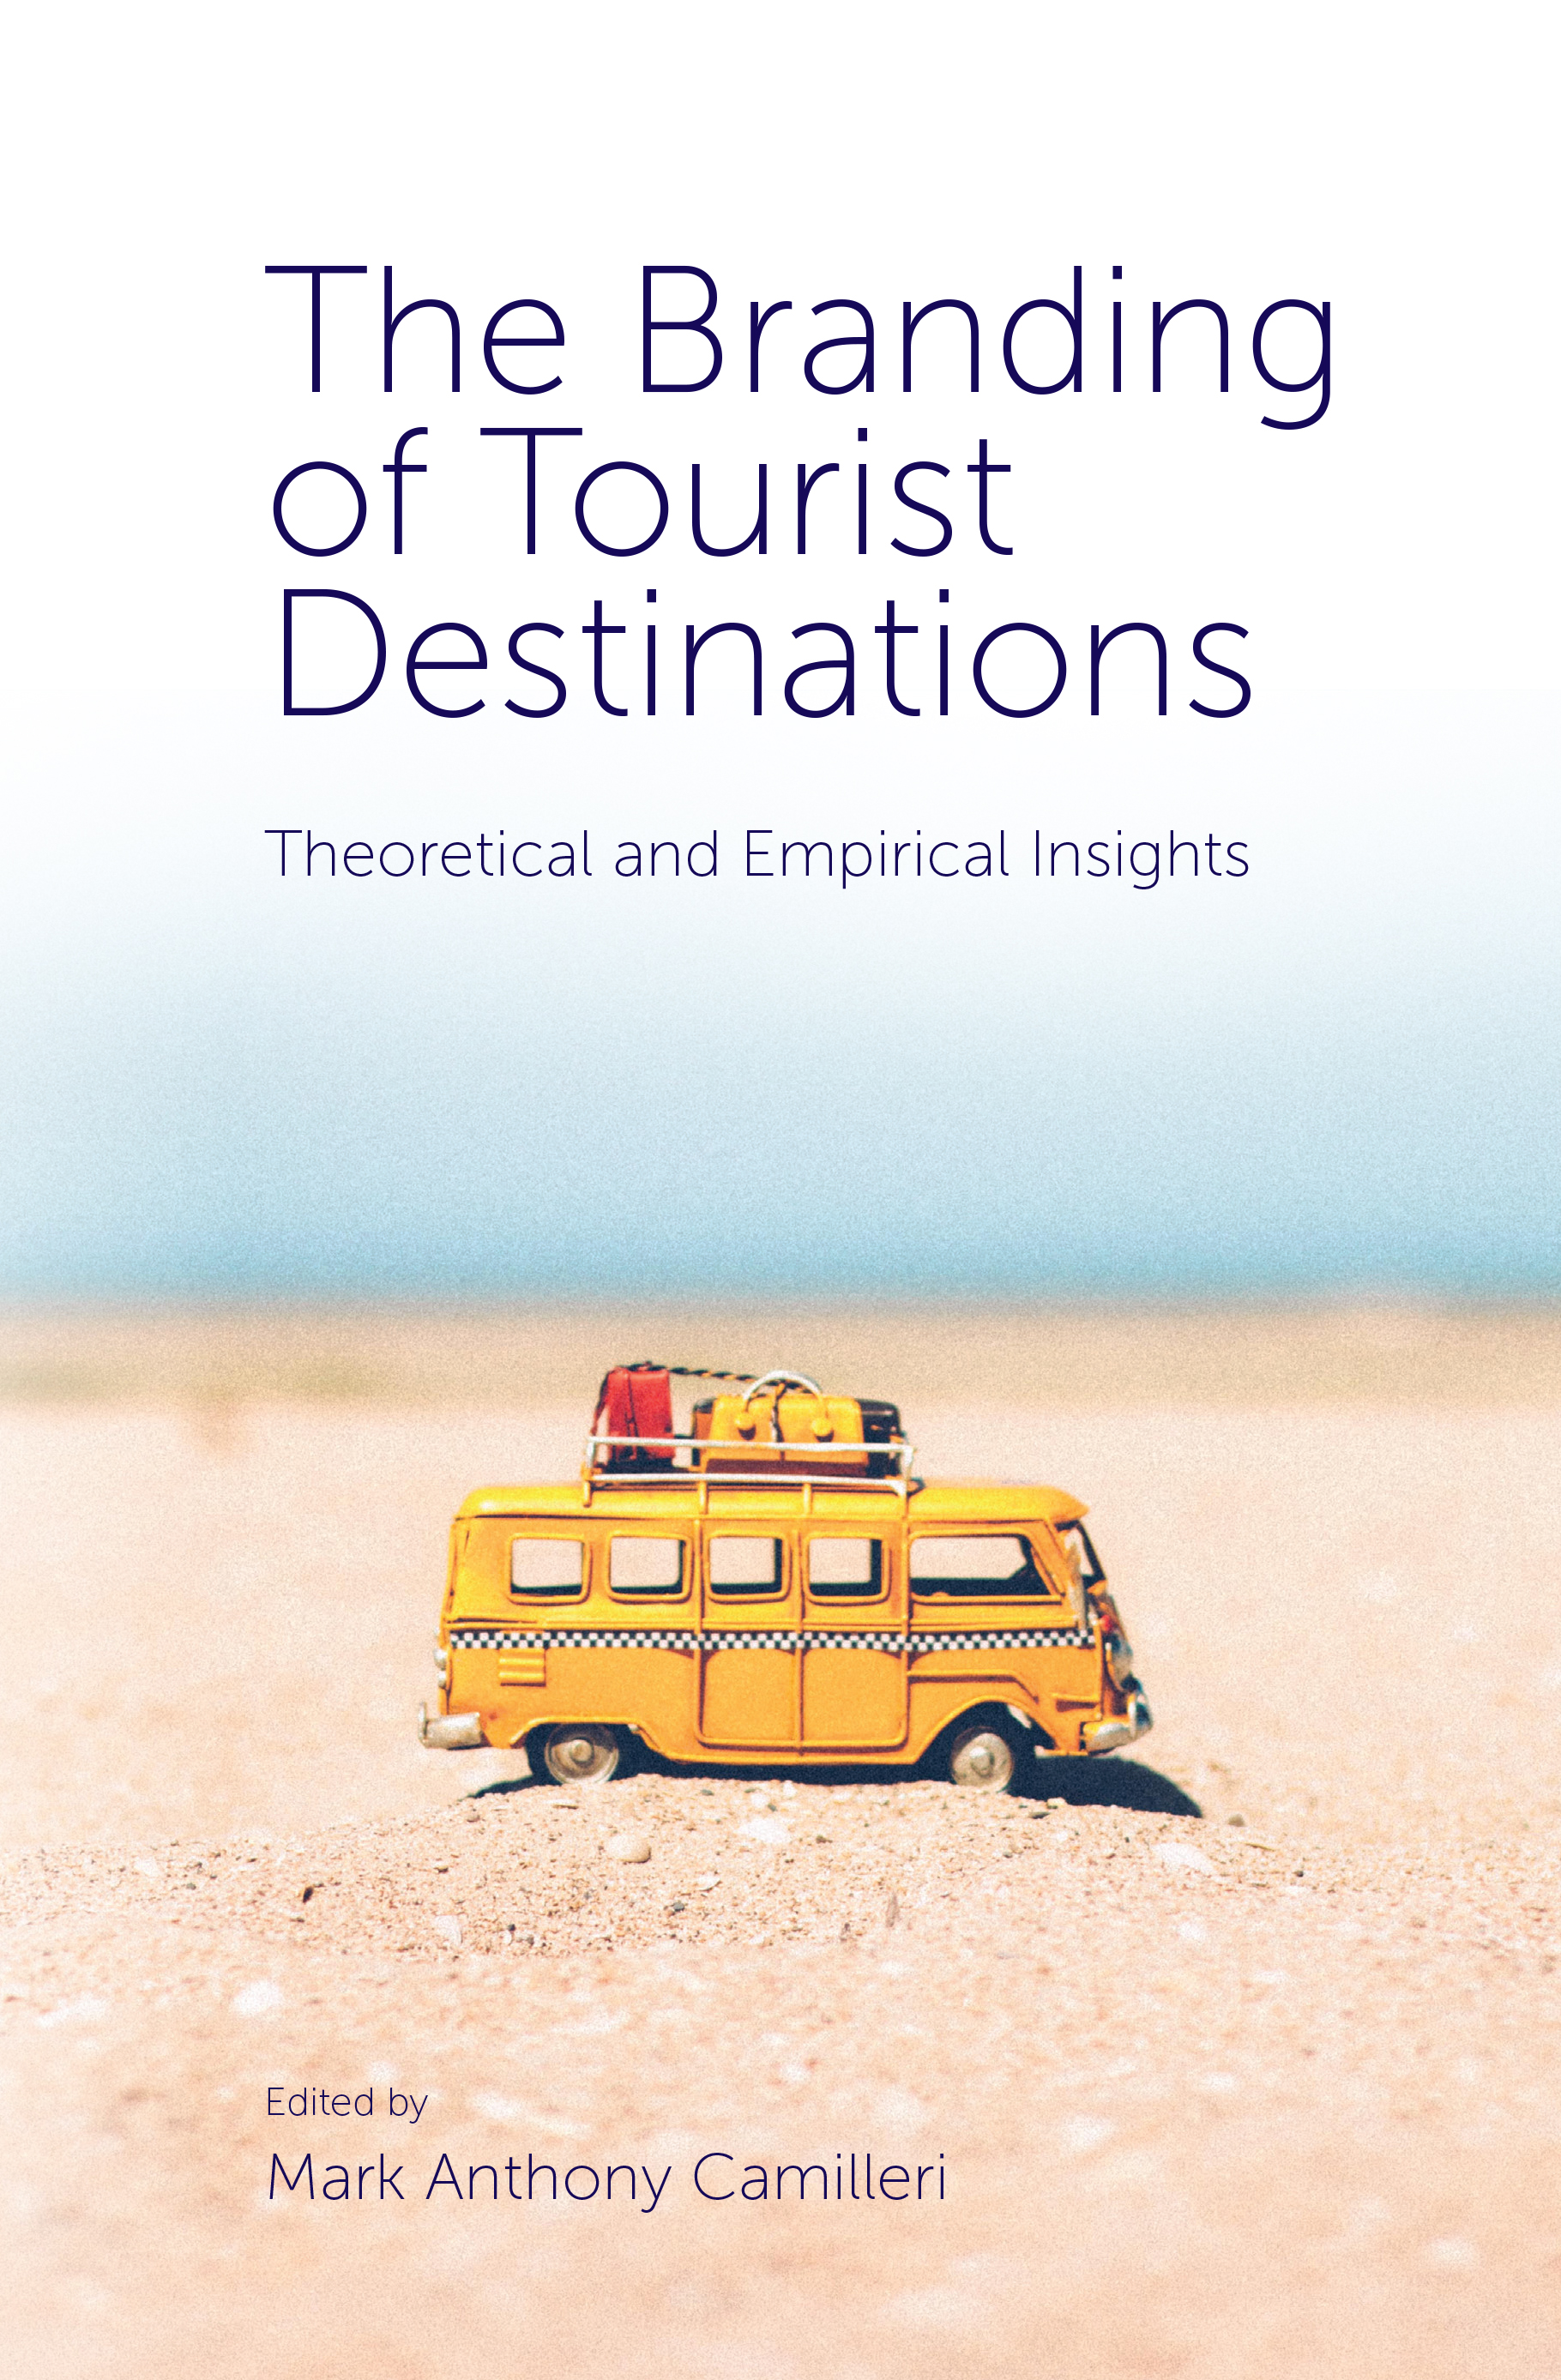 Book cover for The Branding of Tourist Destinations:  Theoretical and Empirical Insights a book by Mark Anthony Camilleri